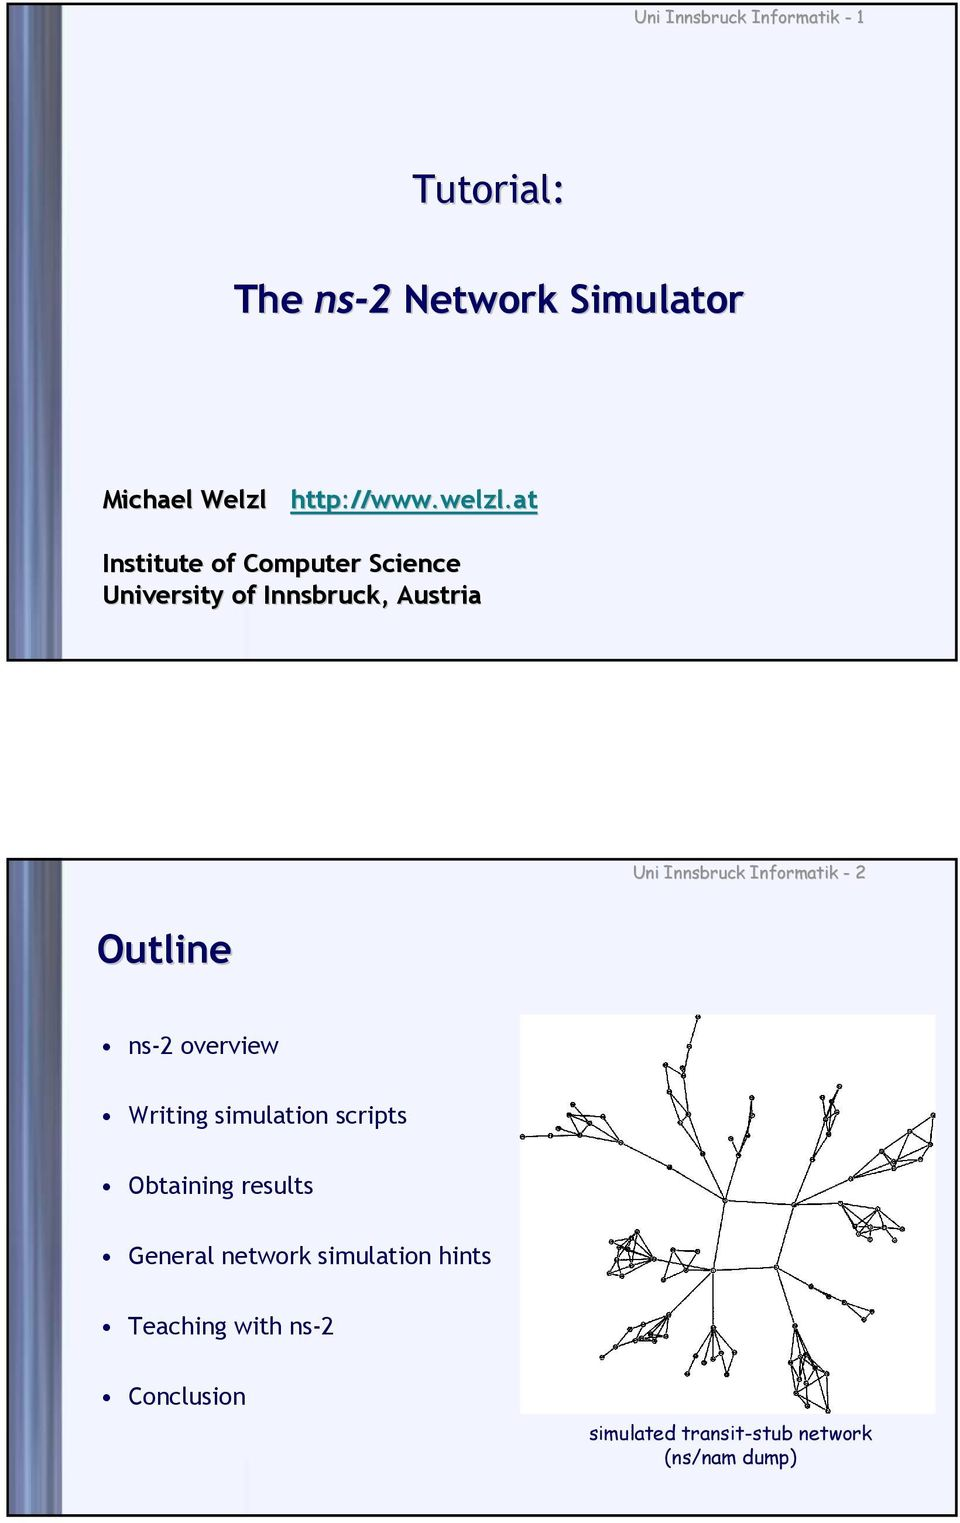 Tutorial: The ns-2 Network Simulator  Outline  Michael Welzl